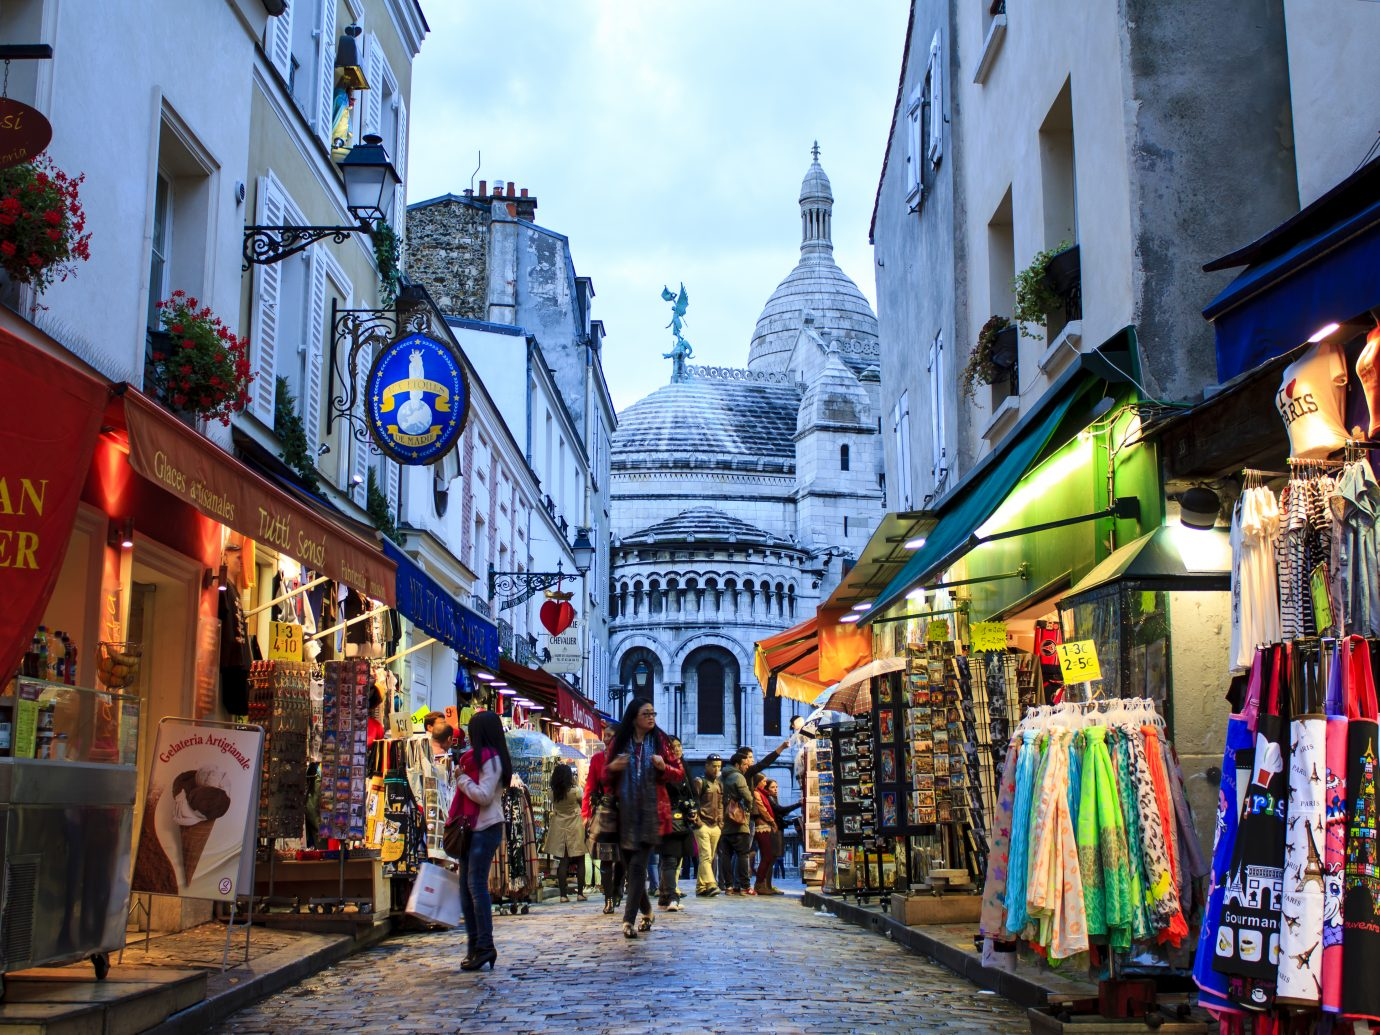 Montmartre by twilight - tourists and Parisians walking around shopping street near Sacre Coeur.""